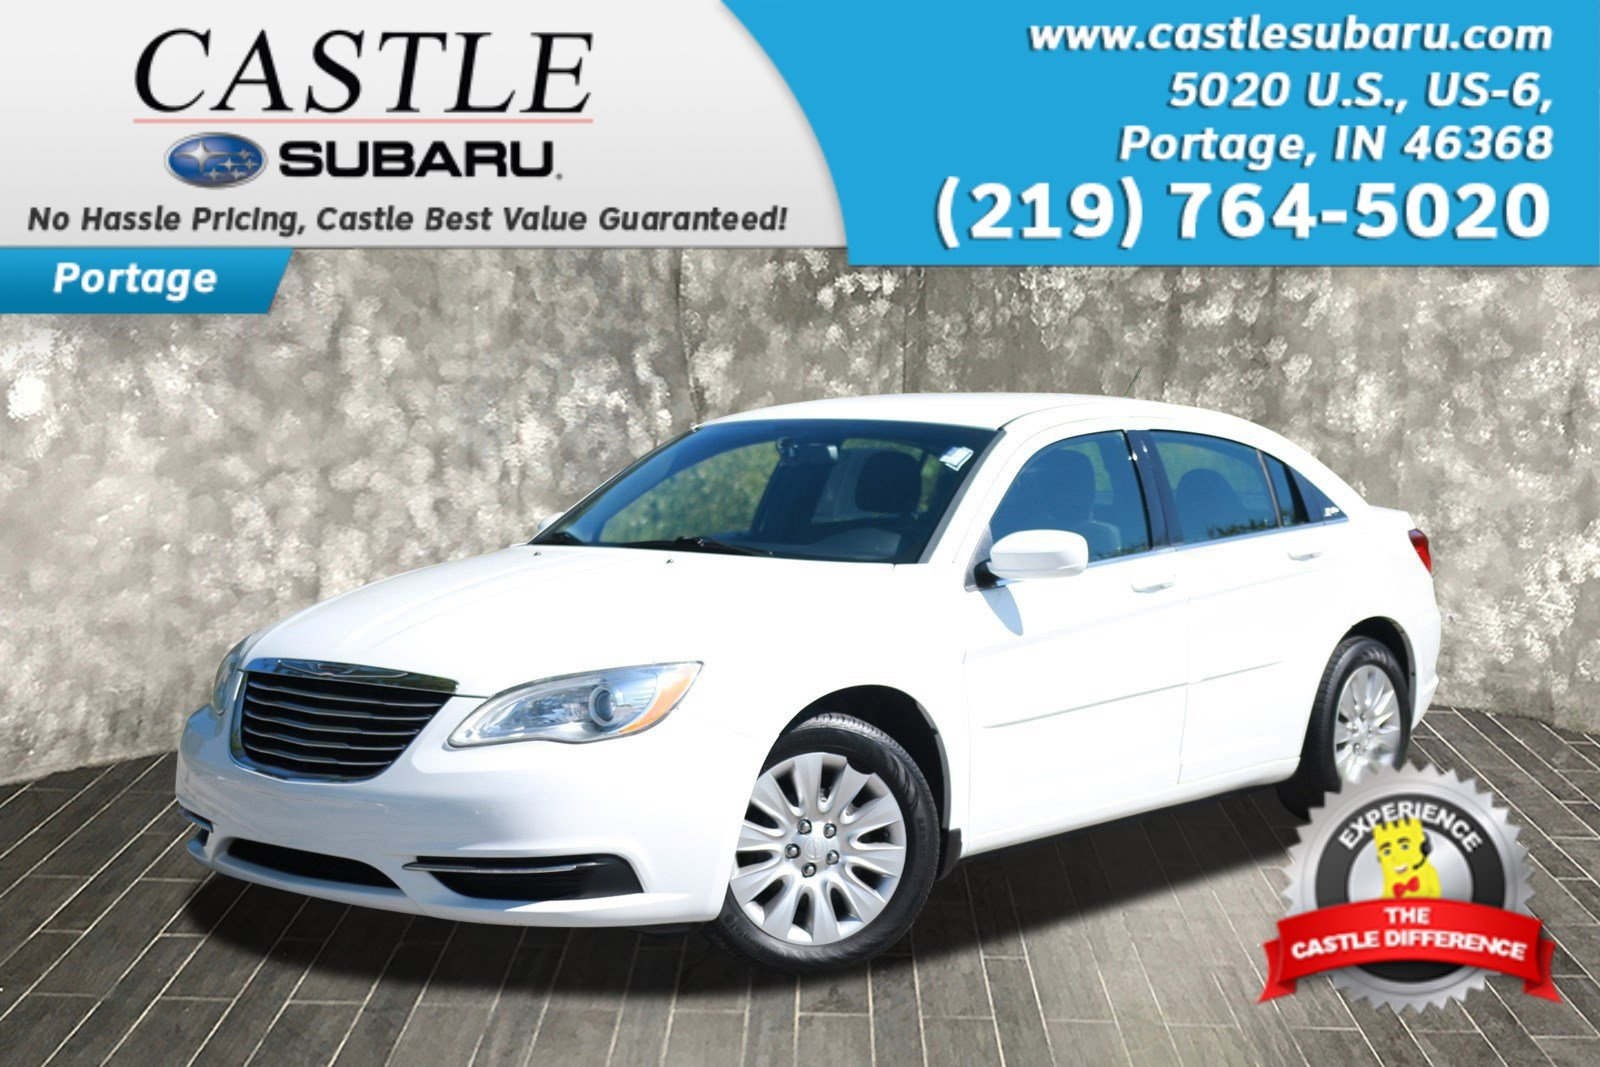 Pre Owned 2013 Chrysler 200 Lx 4dr Car In Portage P5722